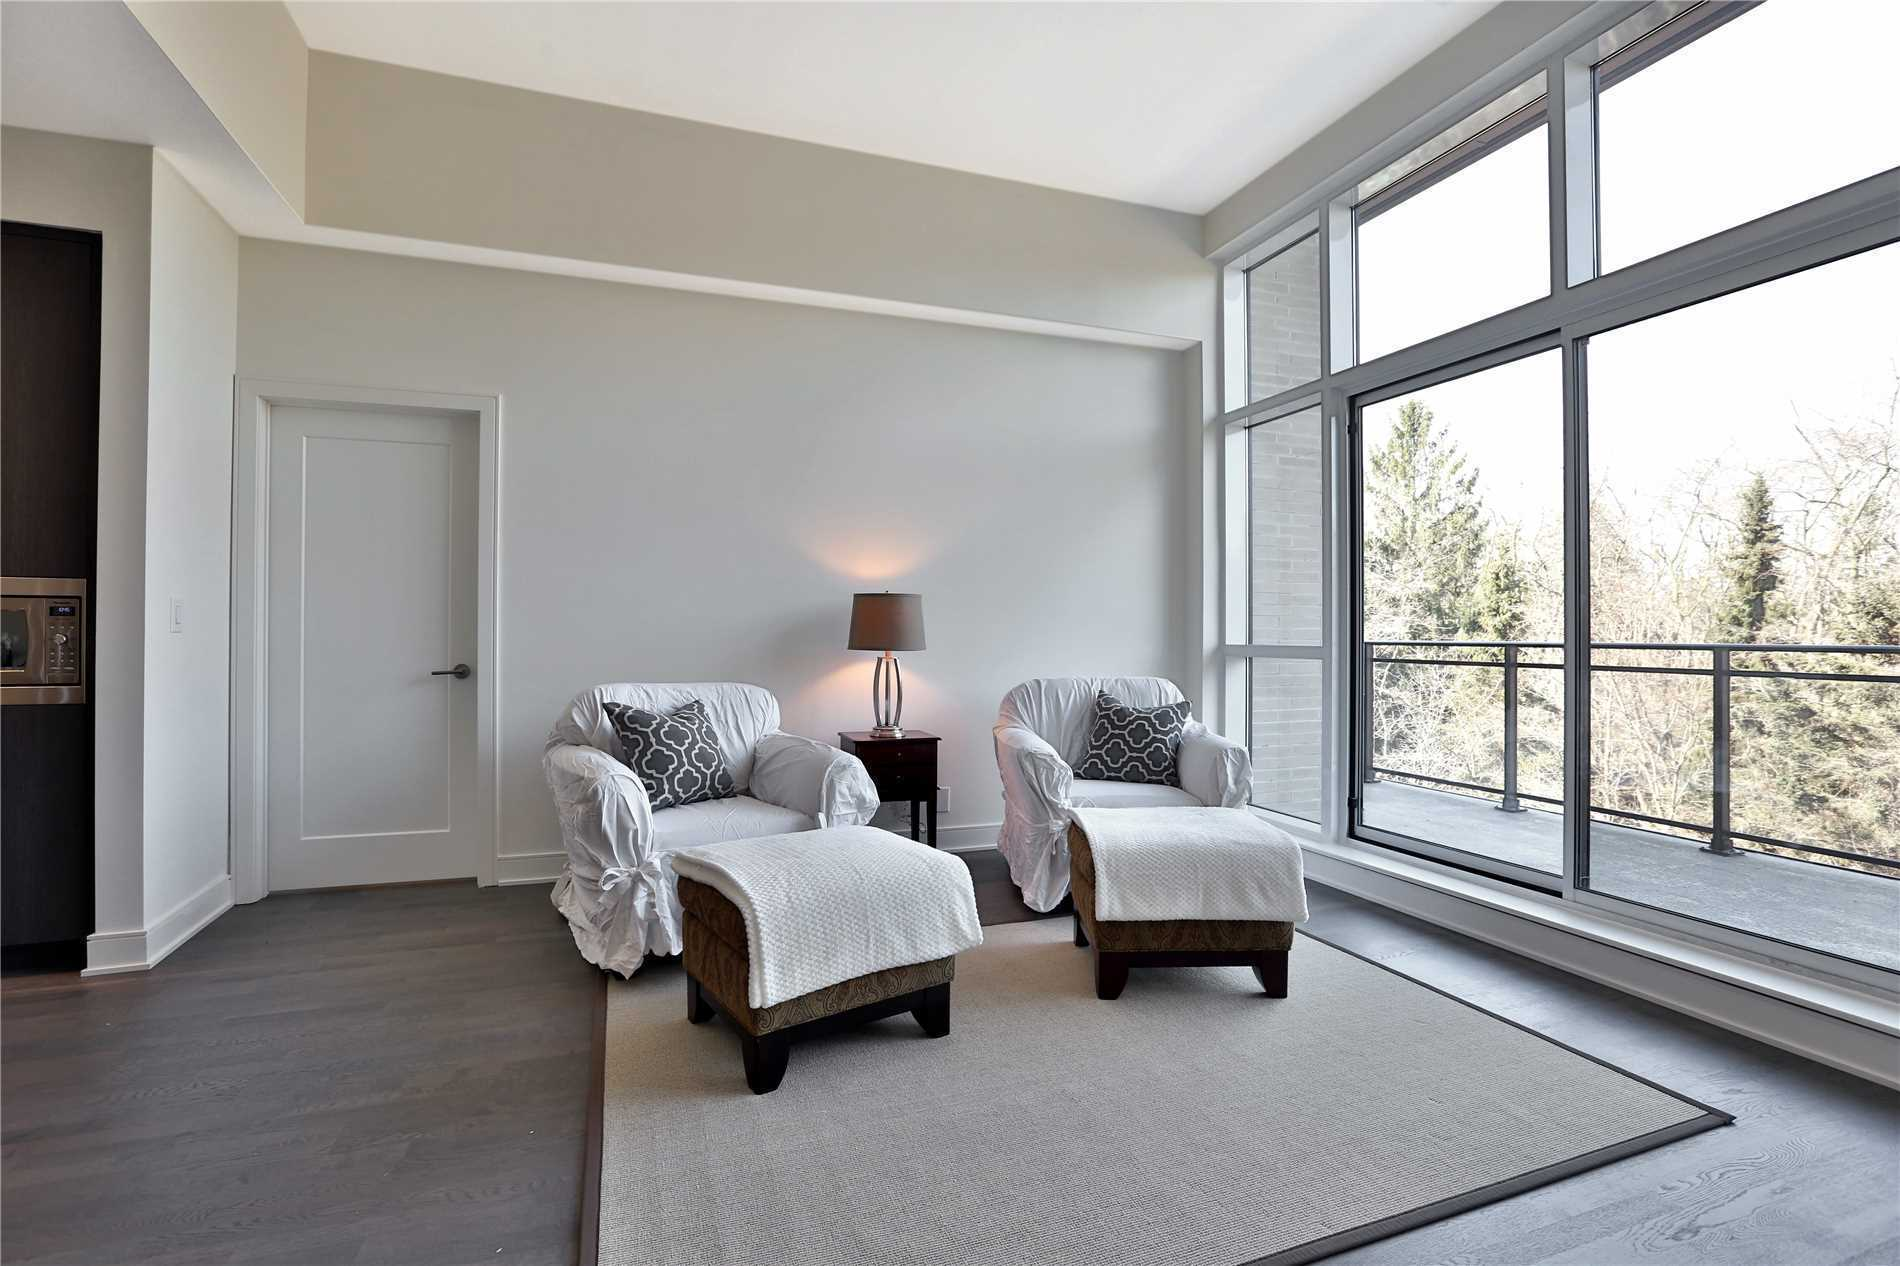 #413 - 1575 Lakeshore Rd W, Mississauga W4427980